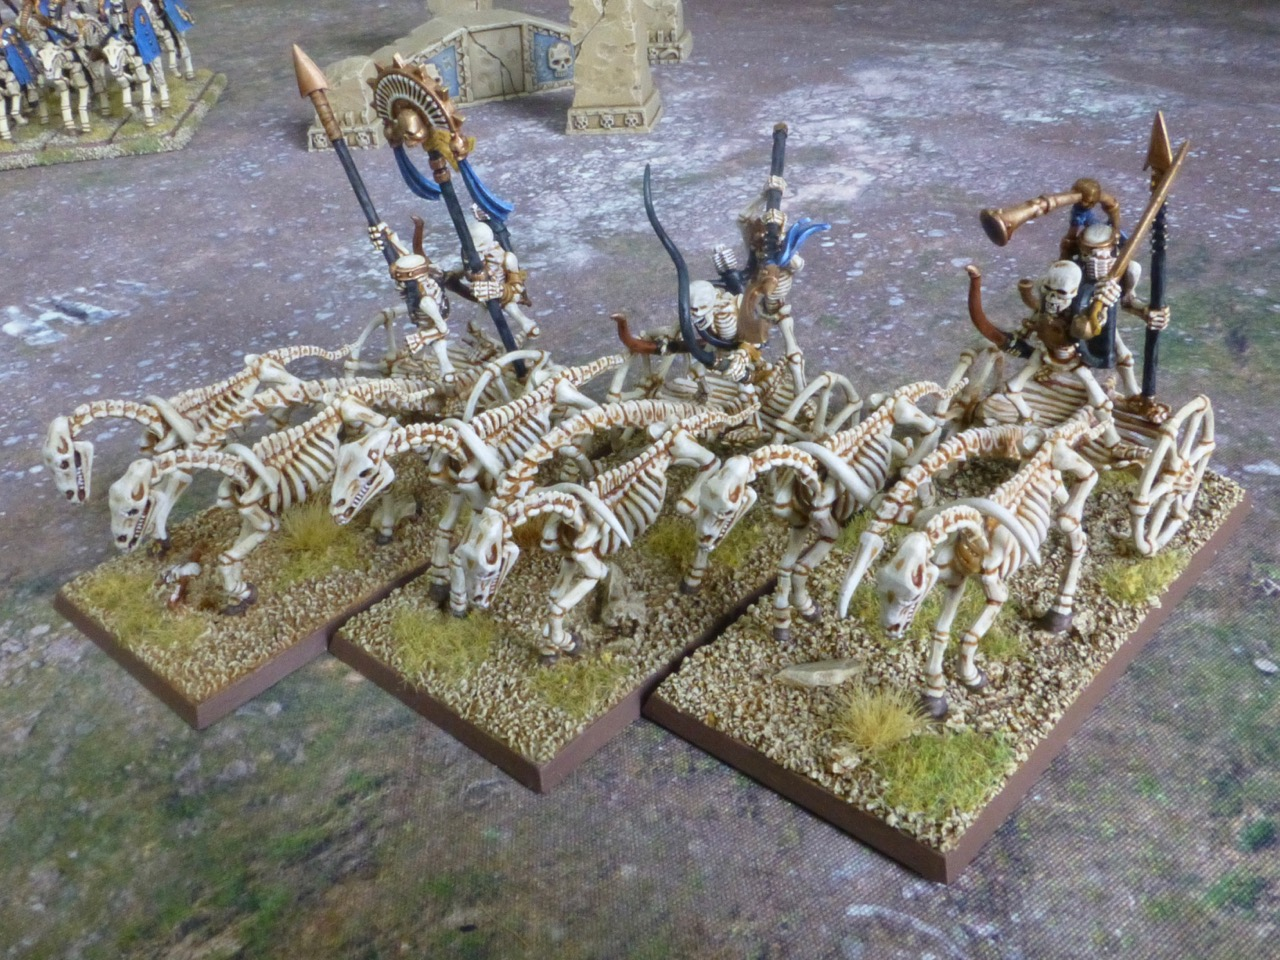 There skeleton chariots driving in line